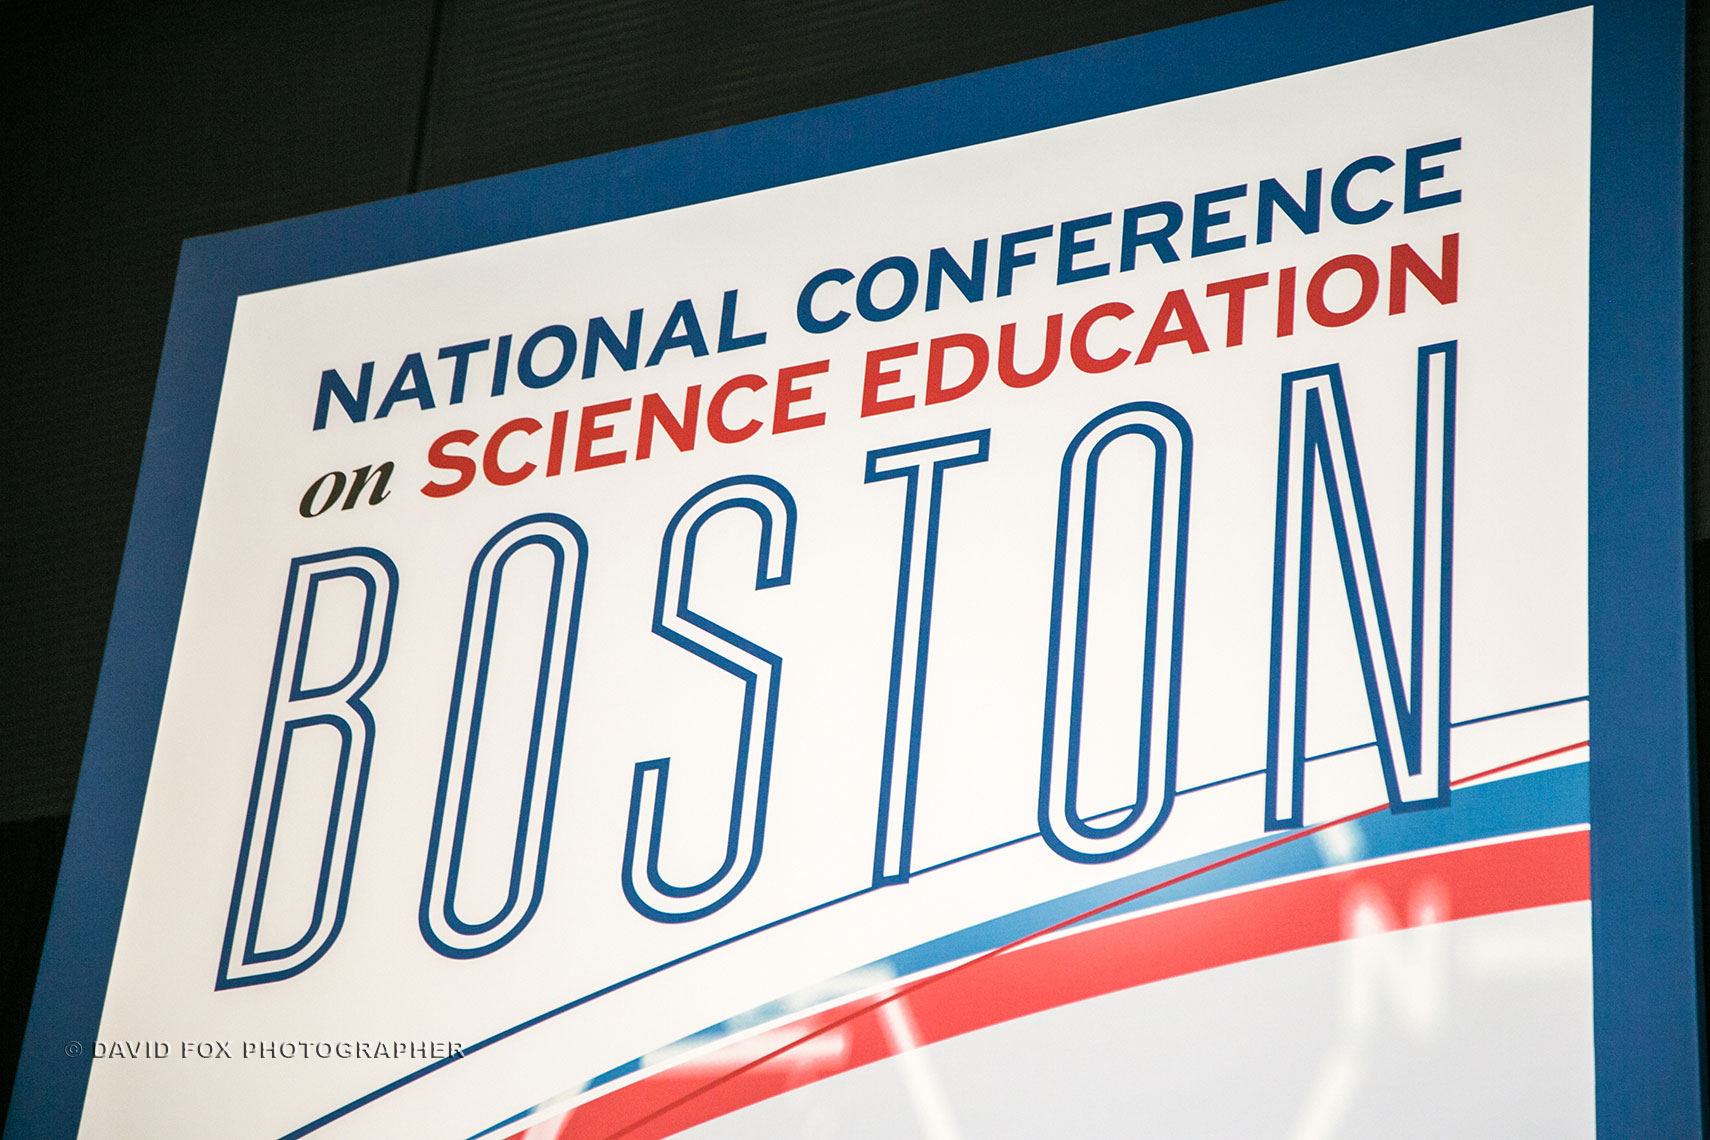 NSTA Conference Welcome Sign by David Fox Photographer